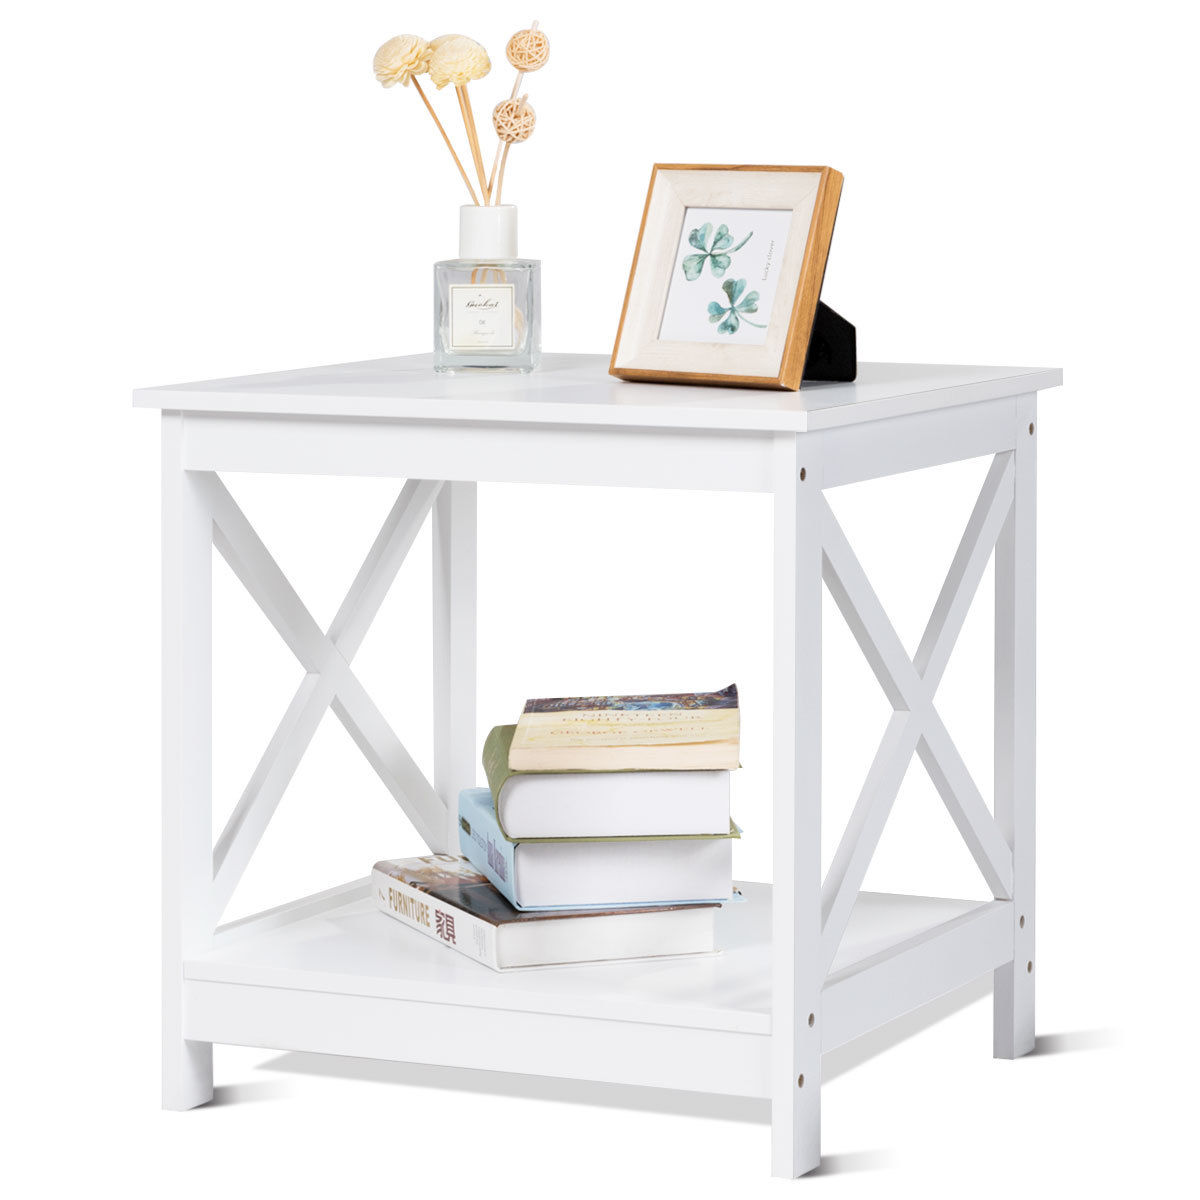 way end table design display shelves accent sofa side tables nightstand white nautical items round coffee and stacking ikea miniature tiffany lamps outdoor couch piece small glass